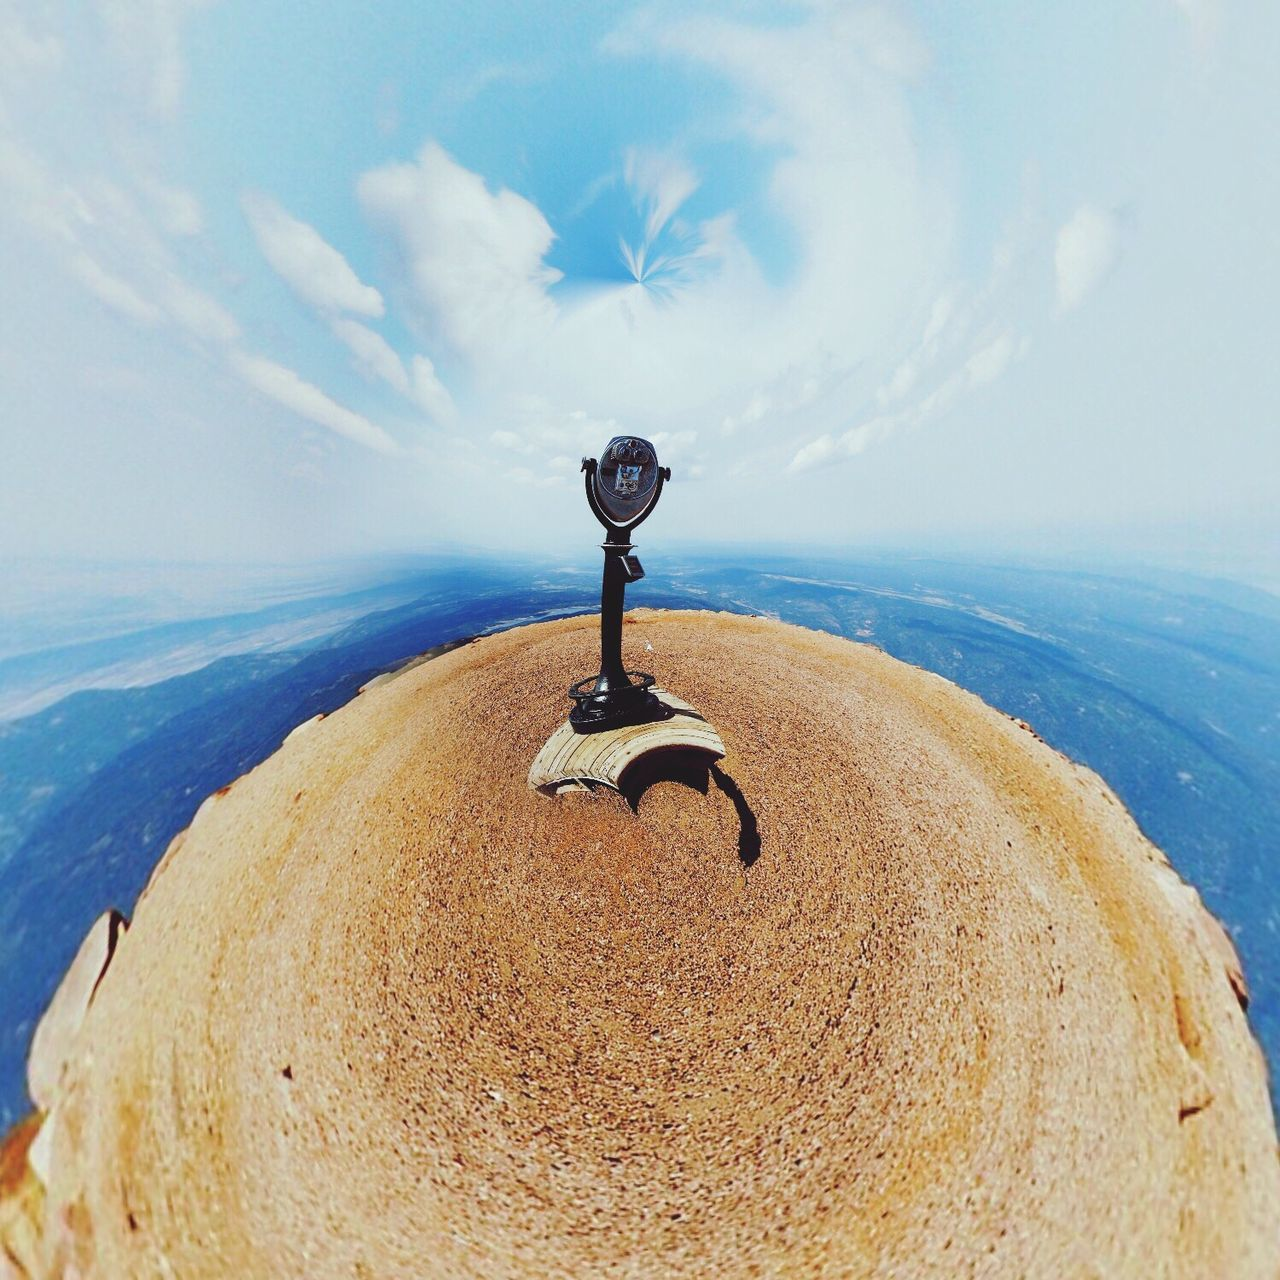 Tinyplanetfx Tinyplanet Sky Clouds Check This Out Binoculars View Planet Creativity Abstract Taking Photos Hello World